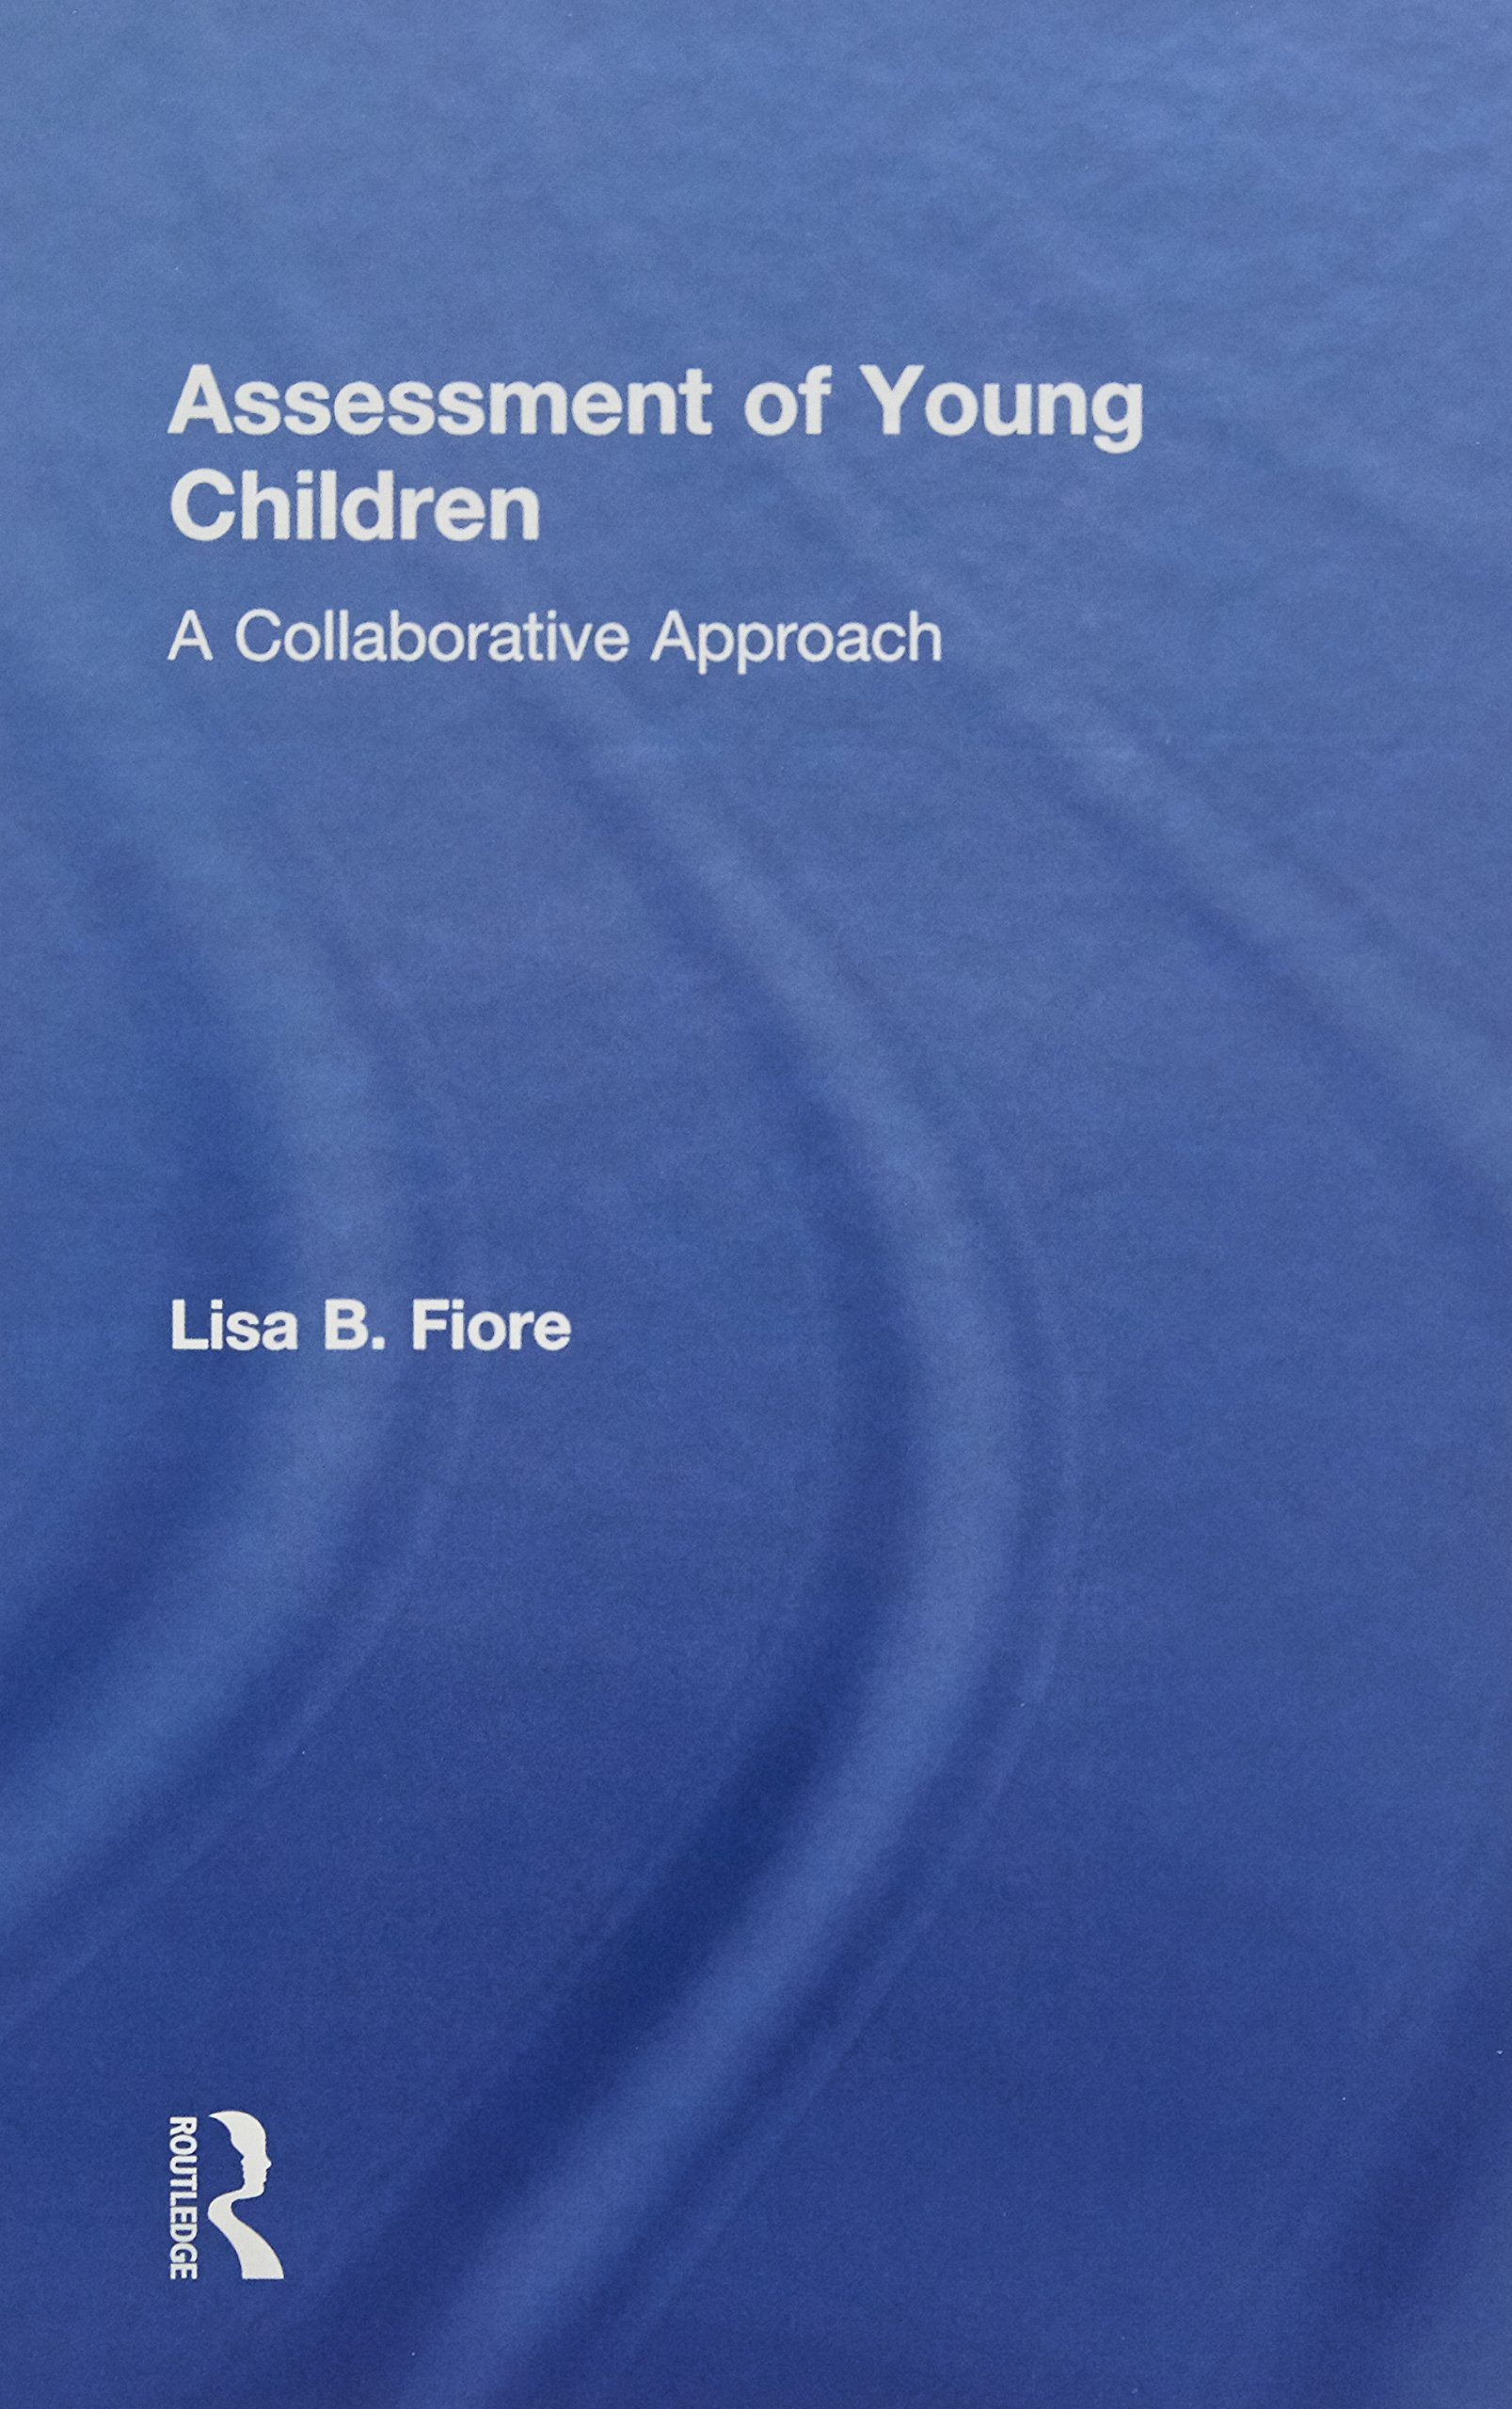 Assessment of Young Children: A Collaborative Approach